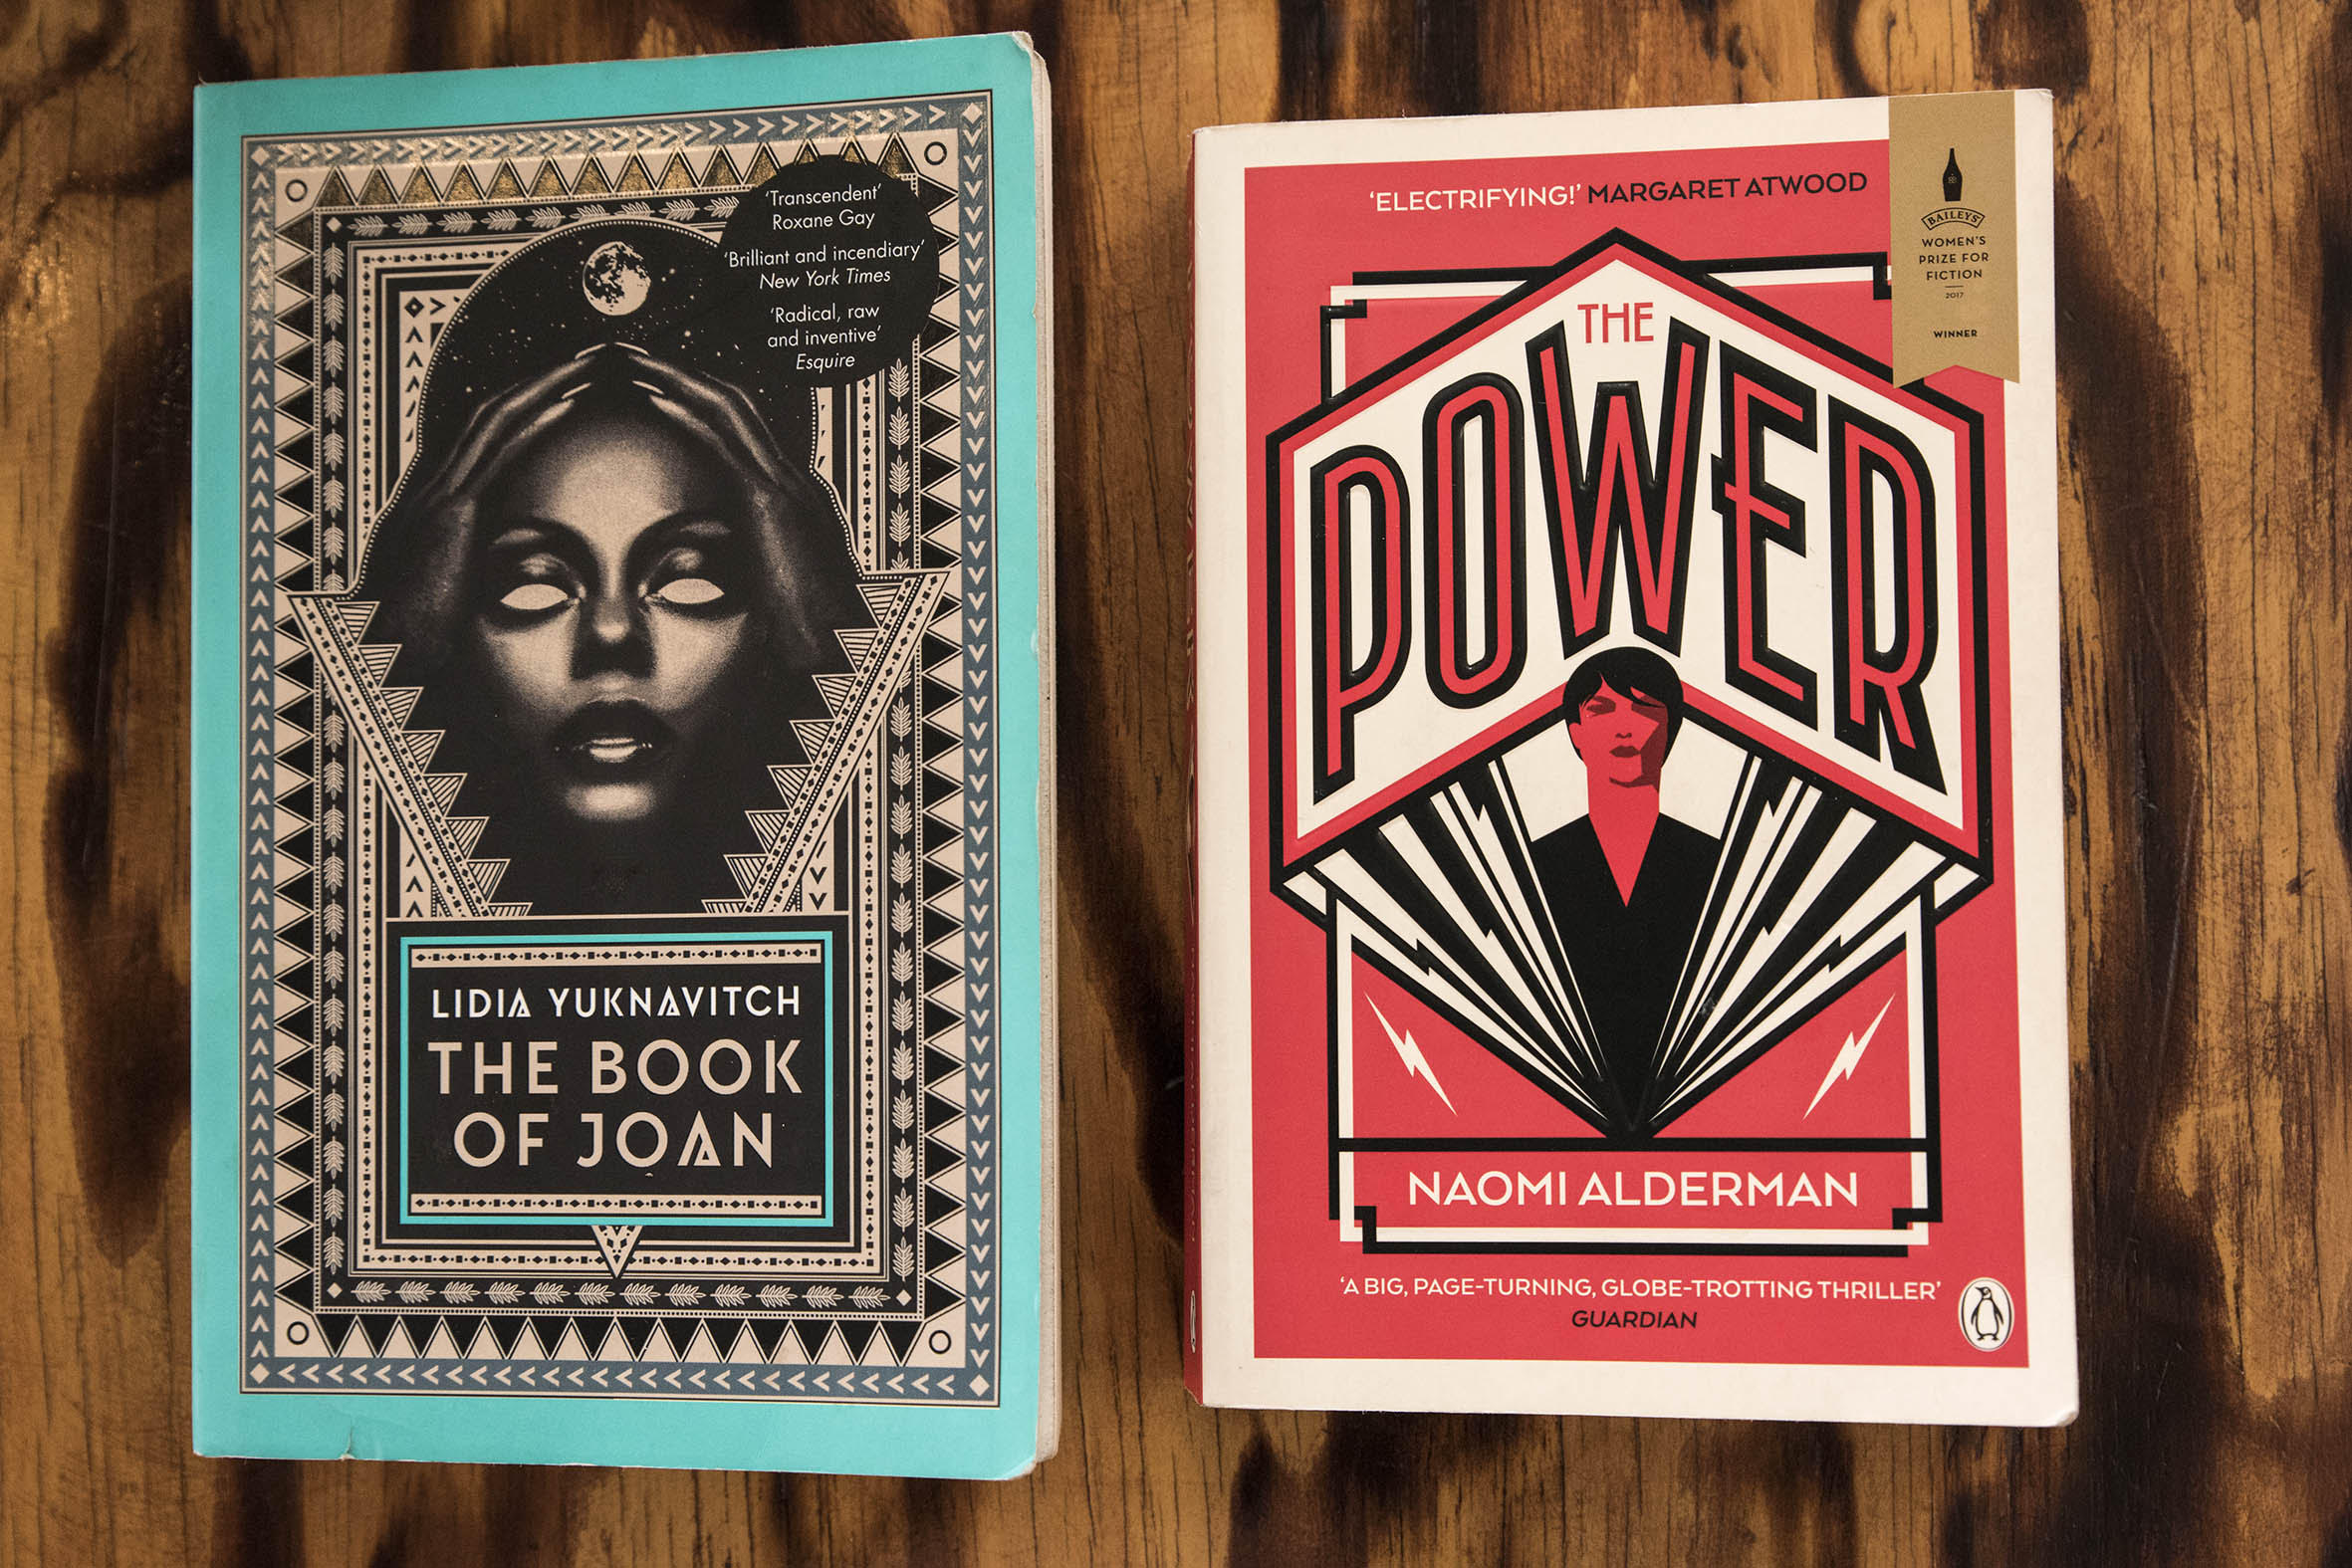 The Book of Joan by Lidia Yuknavitcvh and Power by Naomi Alderman: Photograph by Madelene Cronje